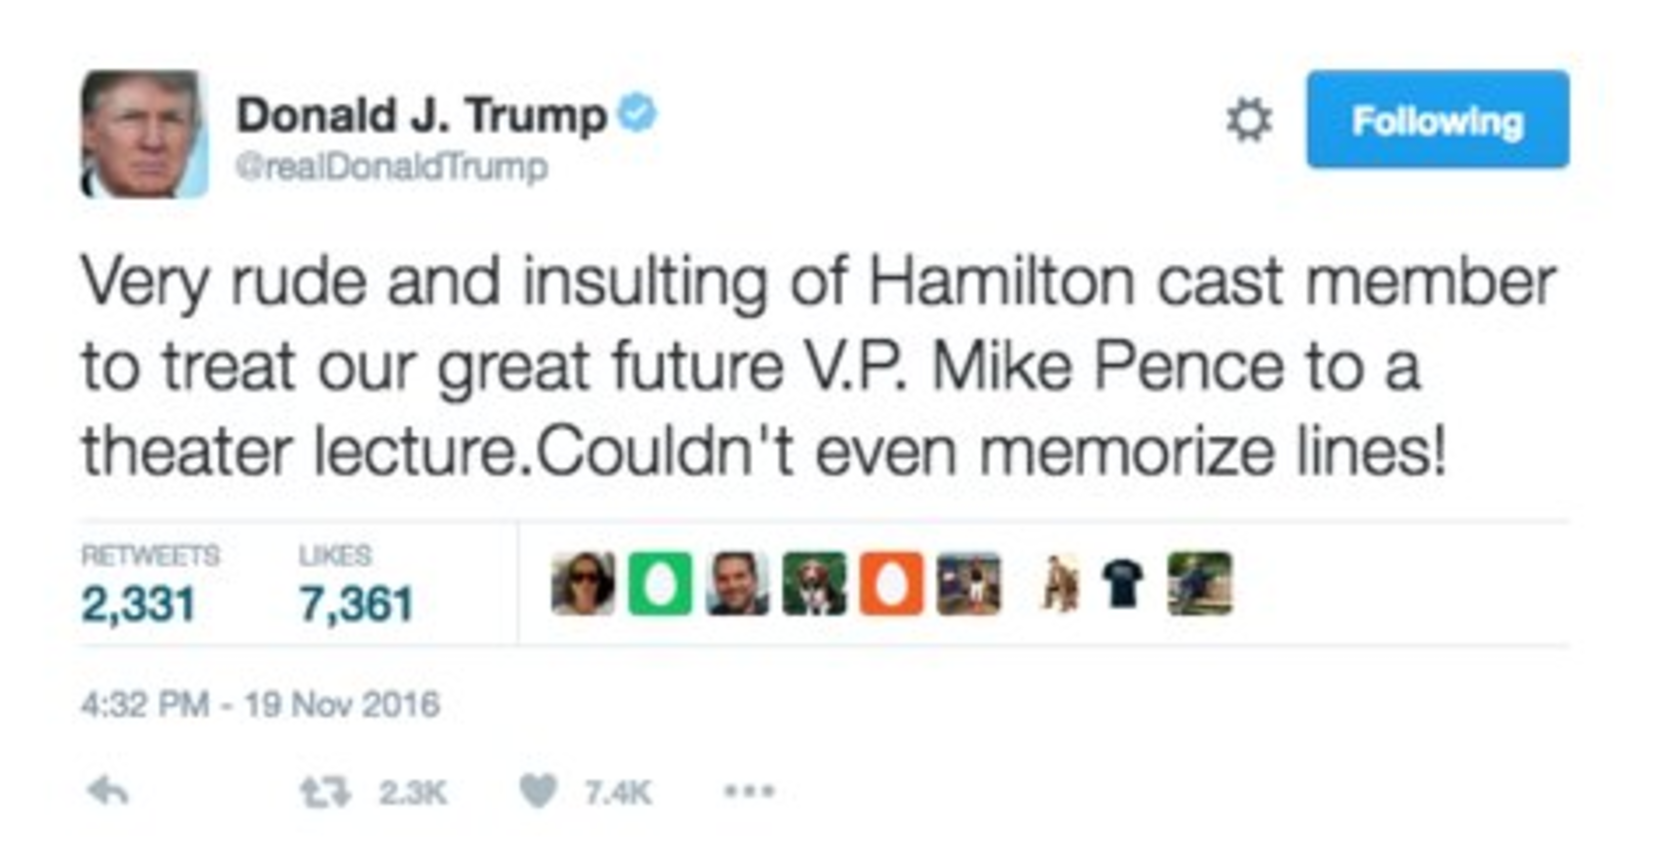 screen shot 2016 11 19 at 7 18 38 pm 24 hours later, Donald Trump is still rage tweeting about Hamilton